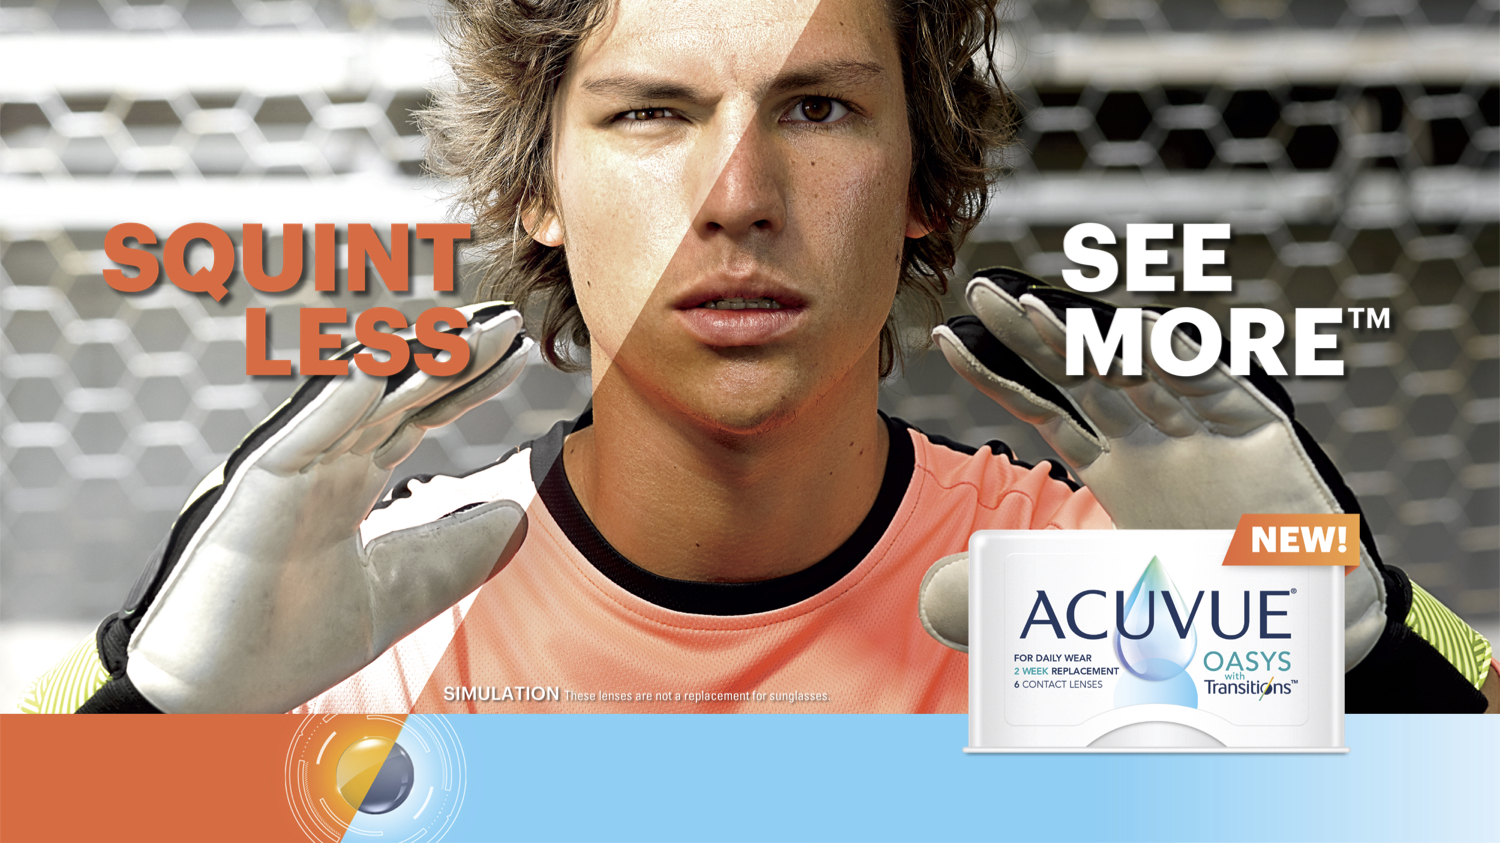 Acuvue Oasis Transitions contact lenses